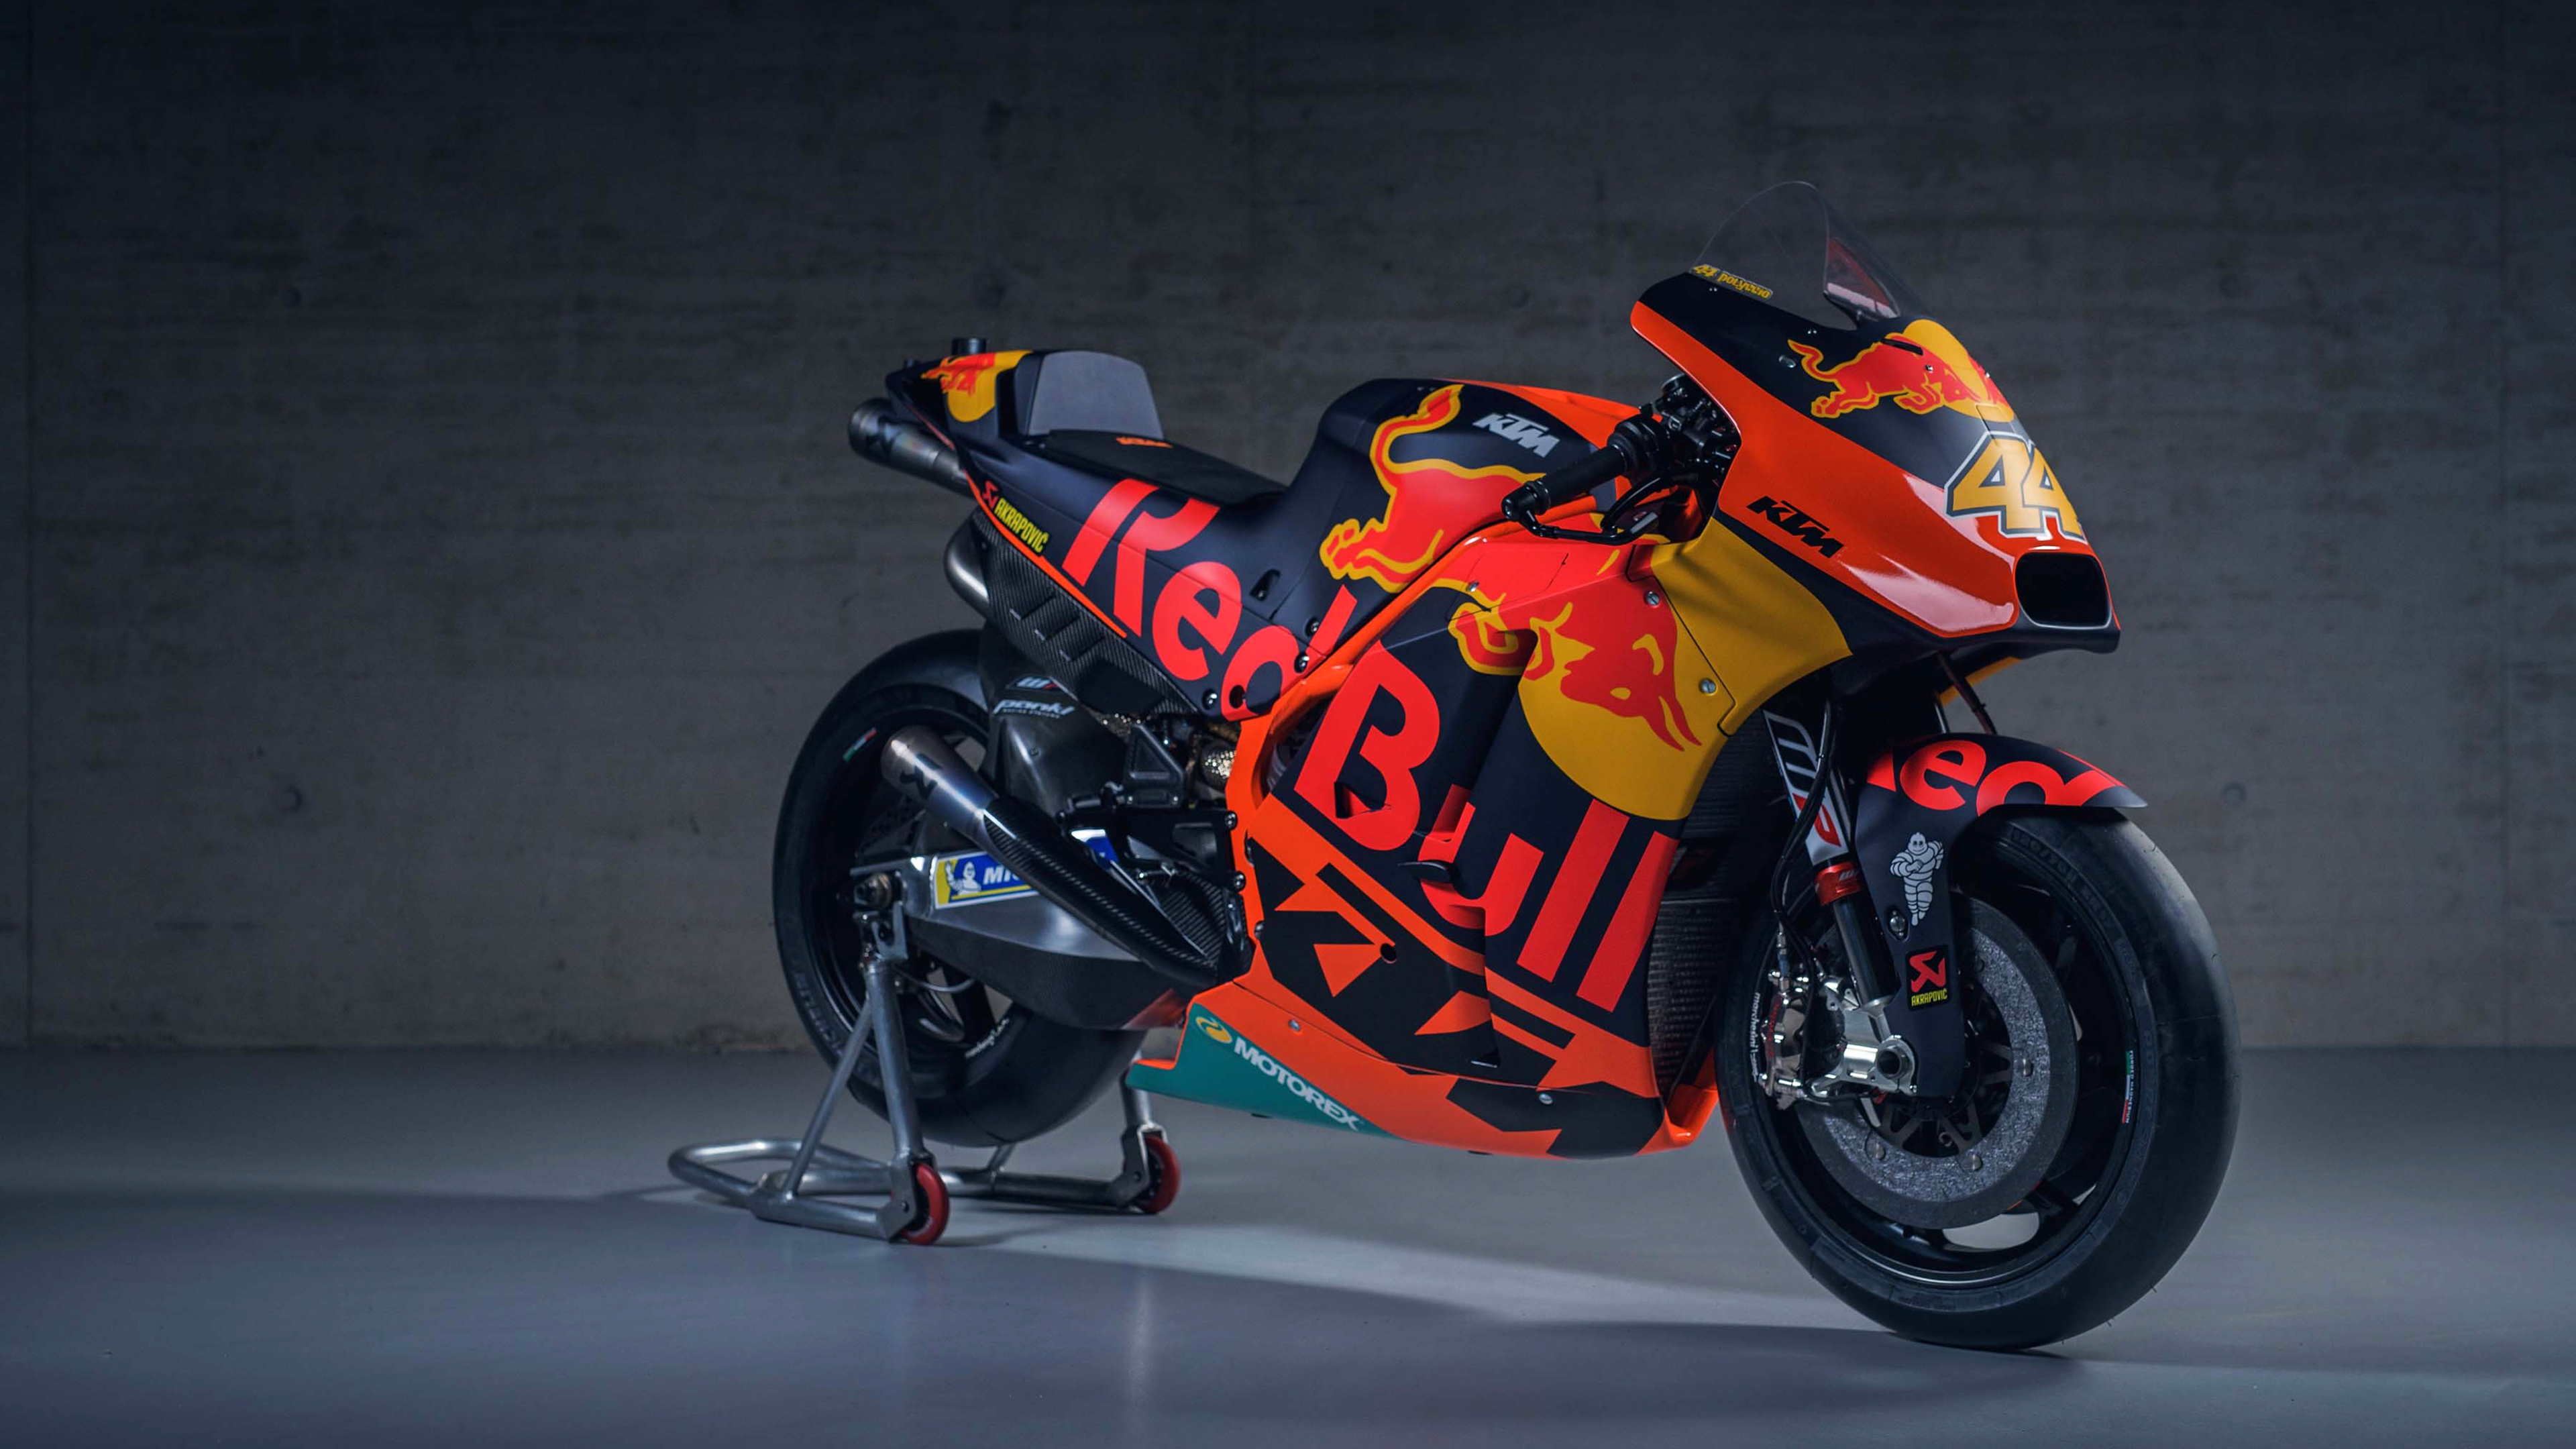 2019 Ktm Motogp 4k Moto Gp Wallpaper 4k 1433033 Hd